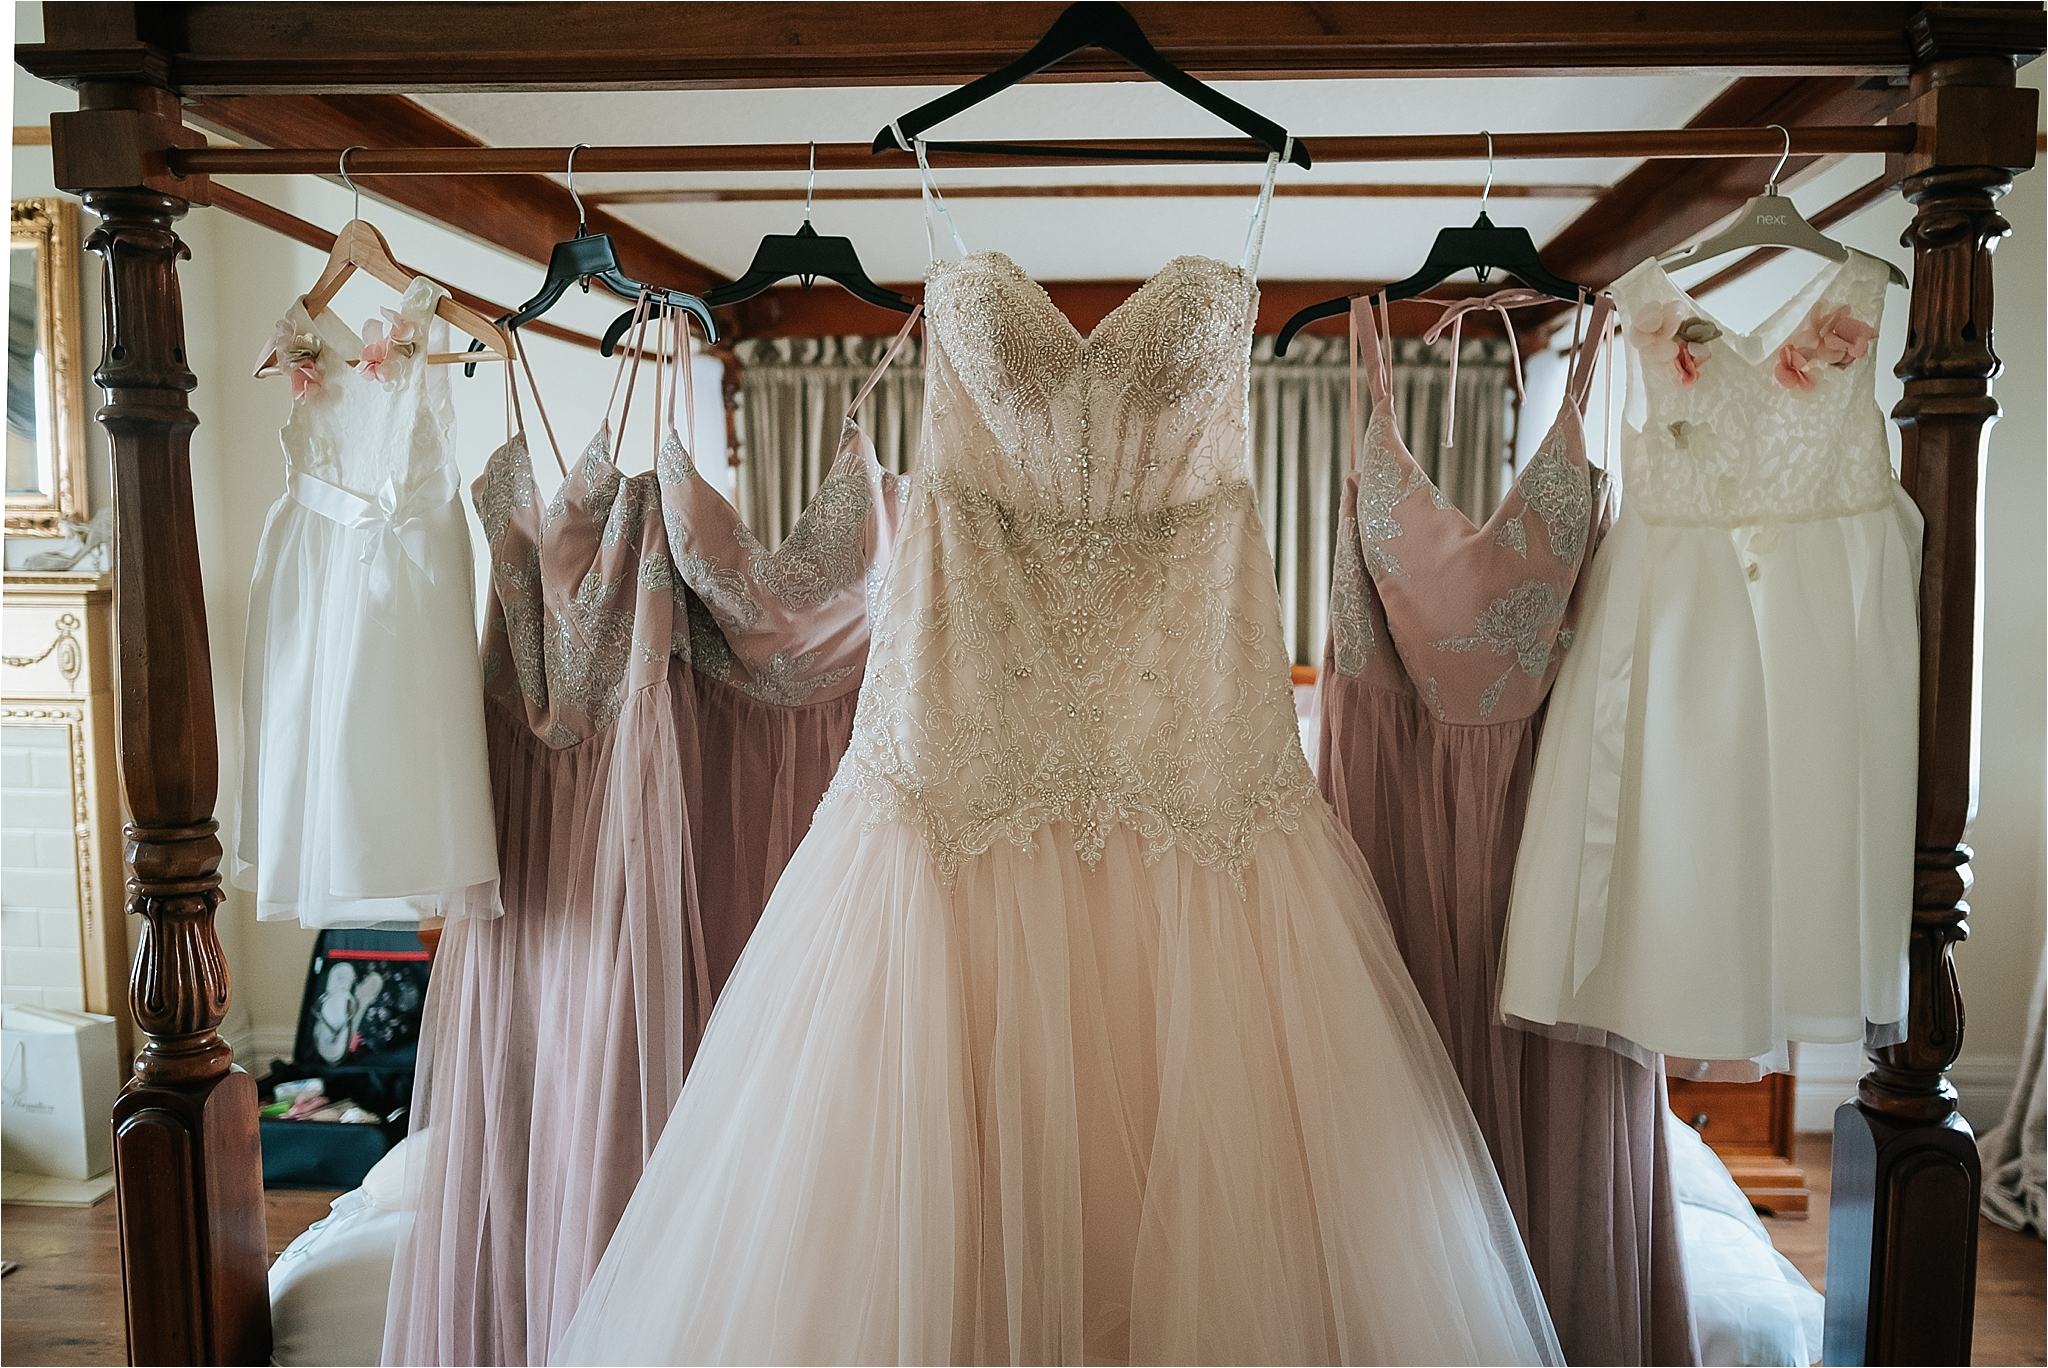 wedding dress hung on bed